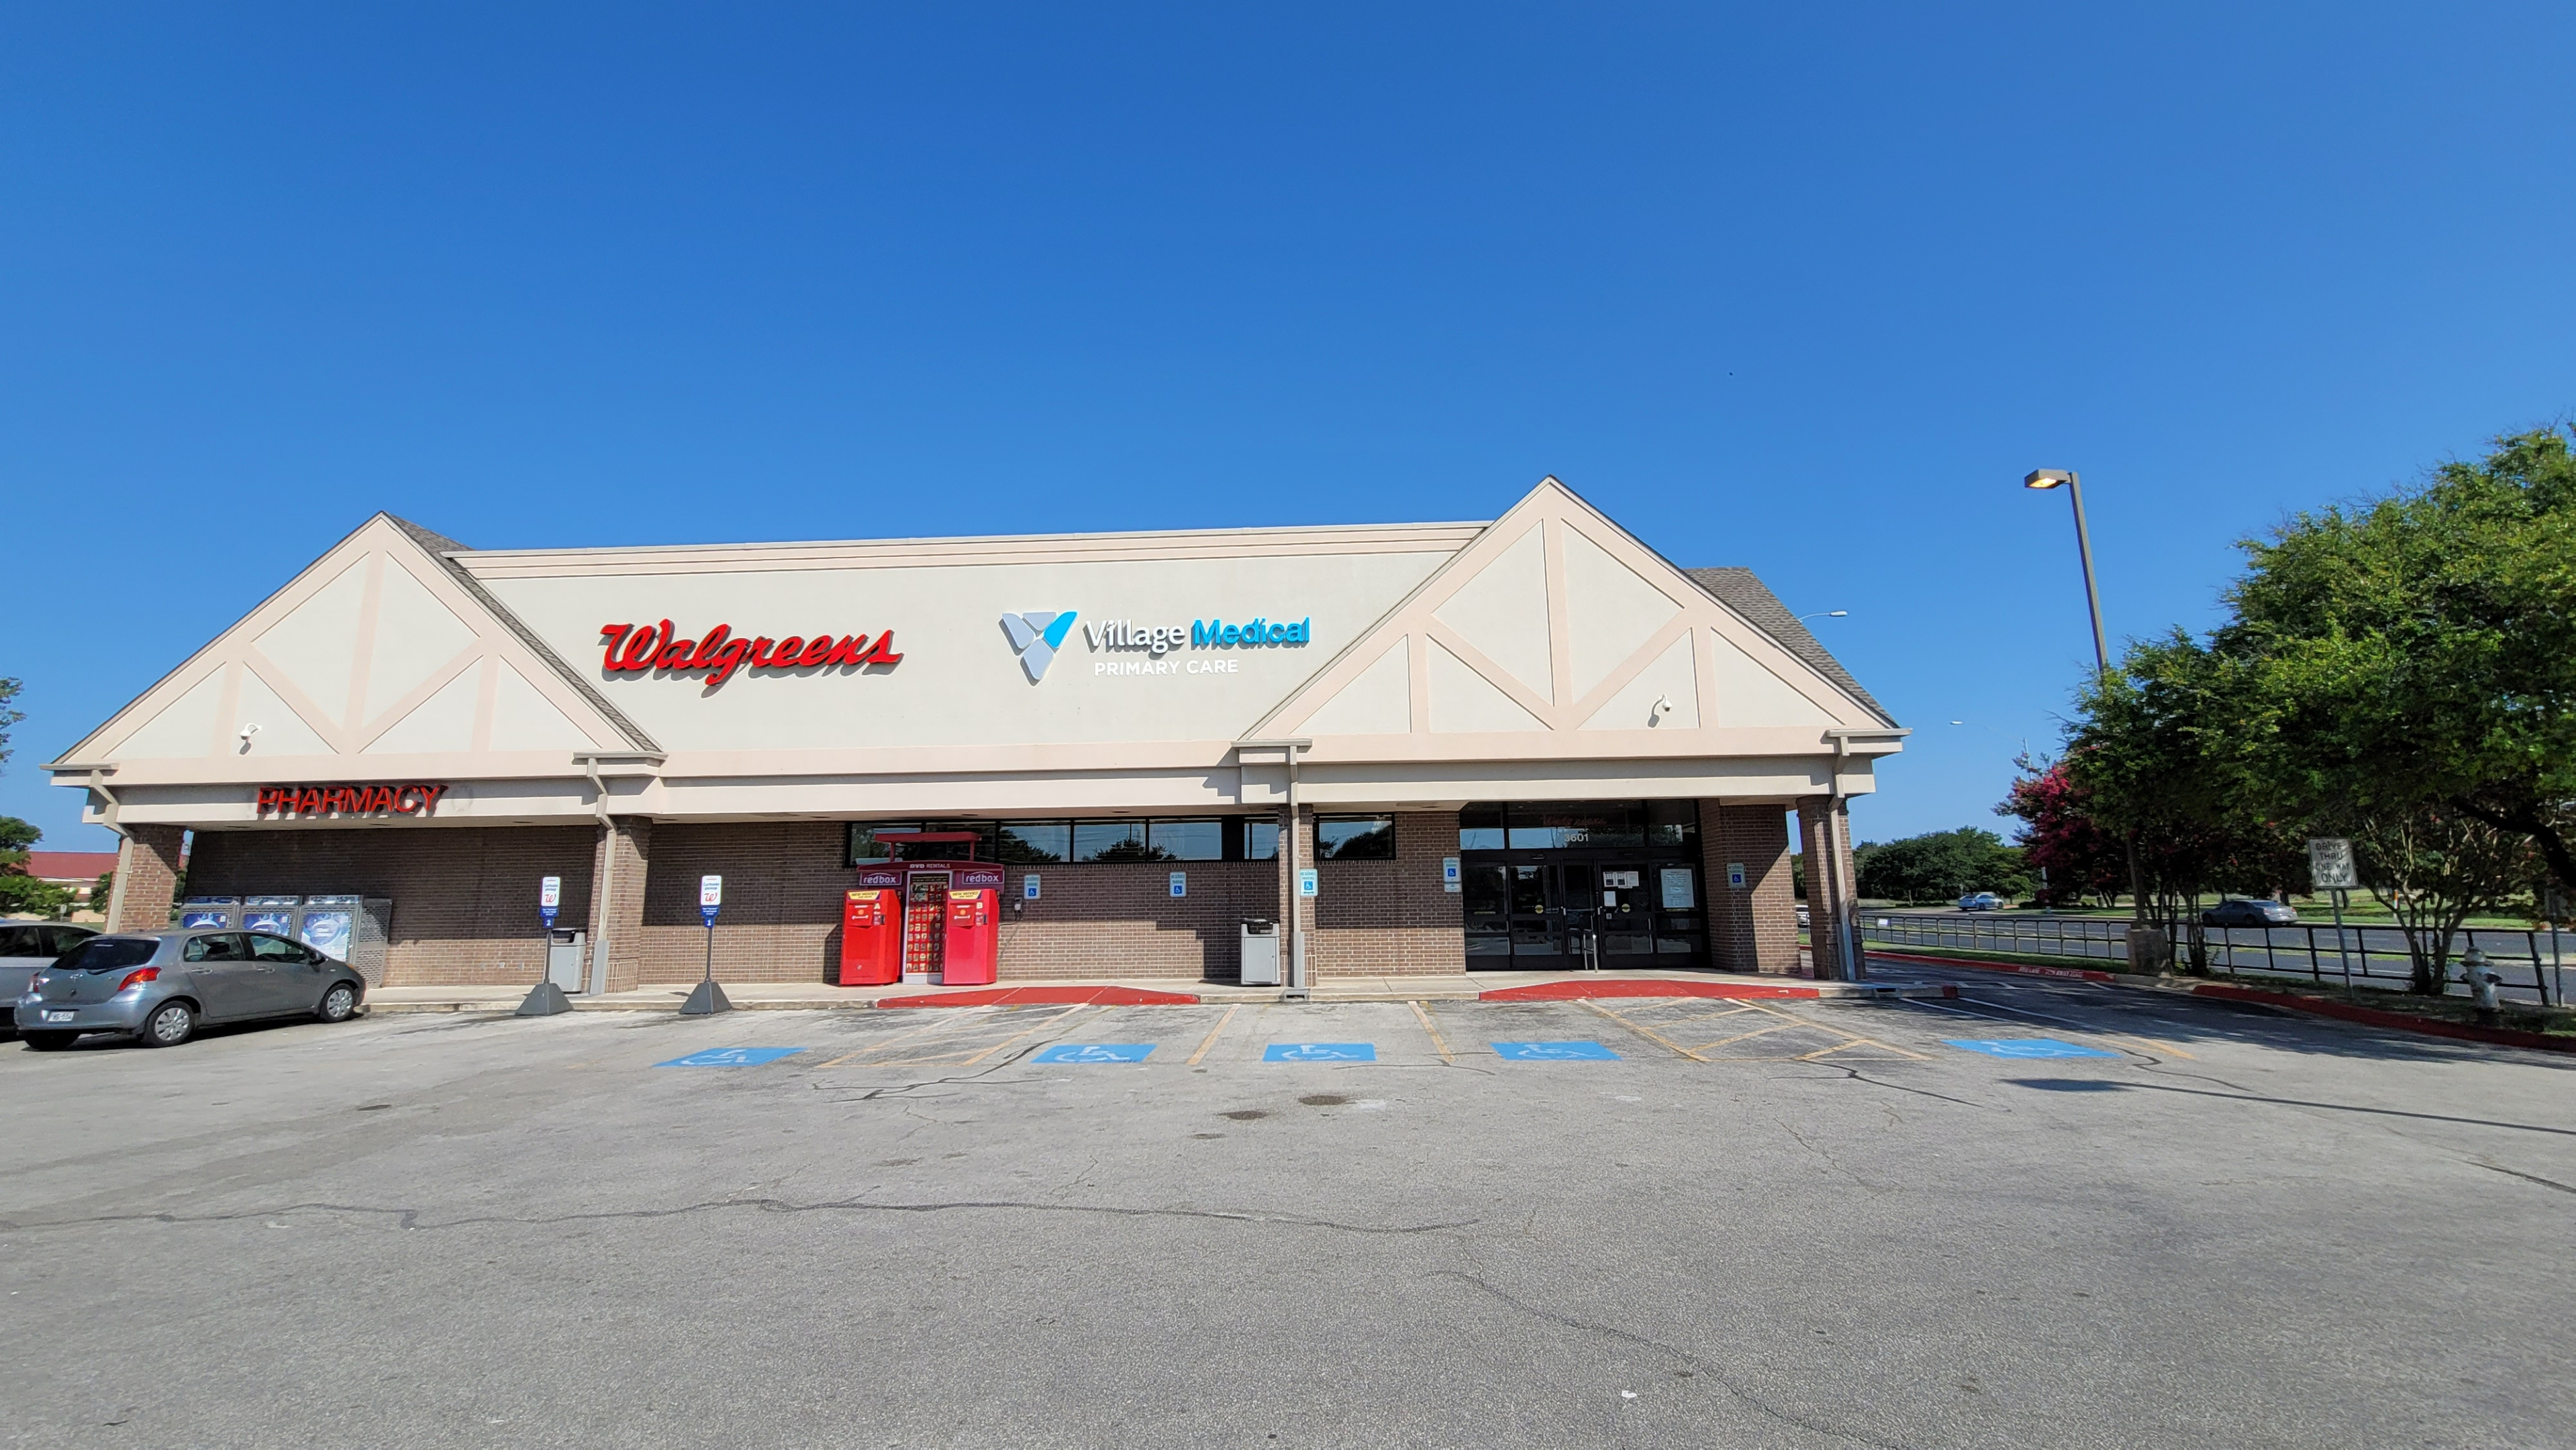 Village Medical at Walgreens -  3601 W. William Cannon Dr. Suite B Austin, TX 78749